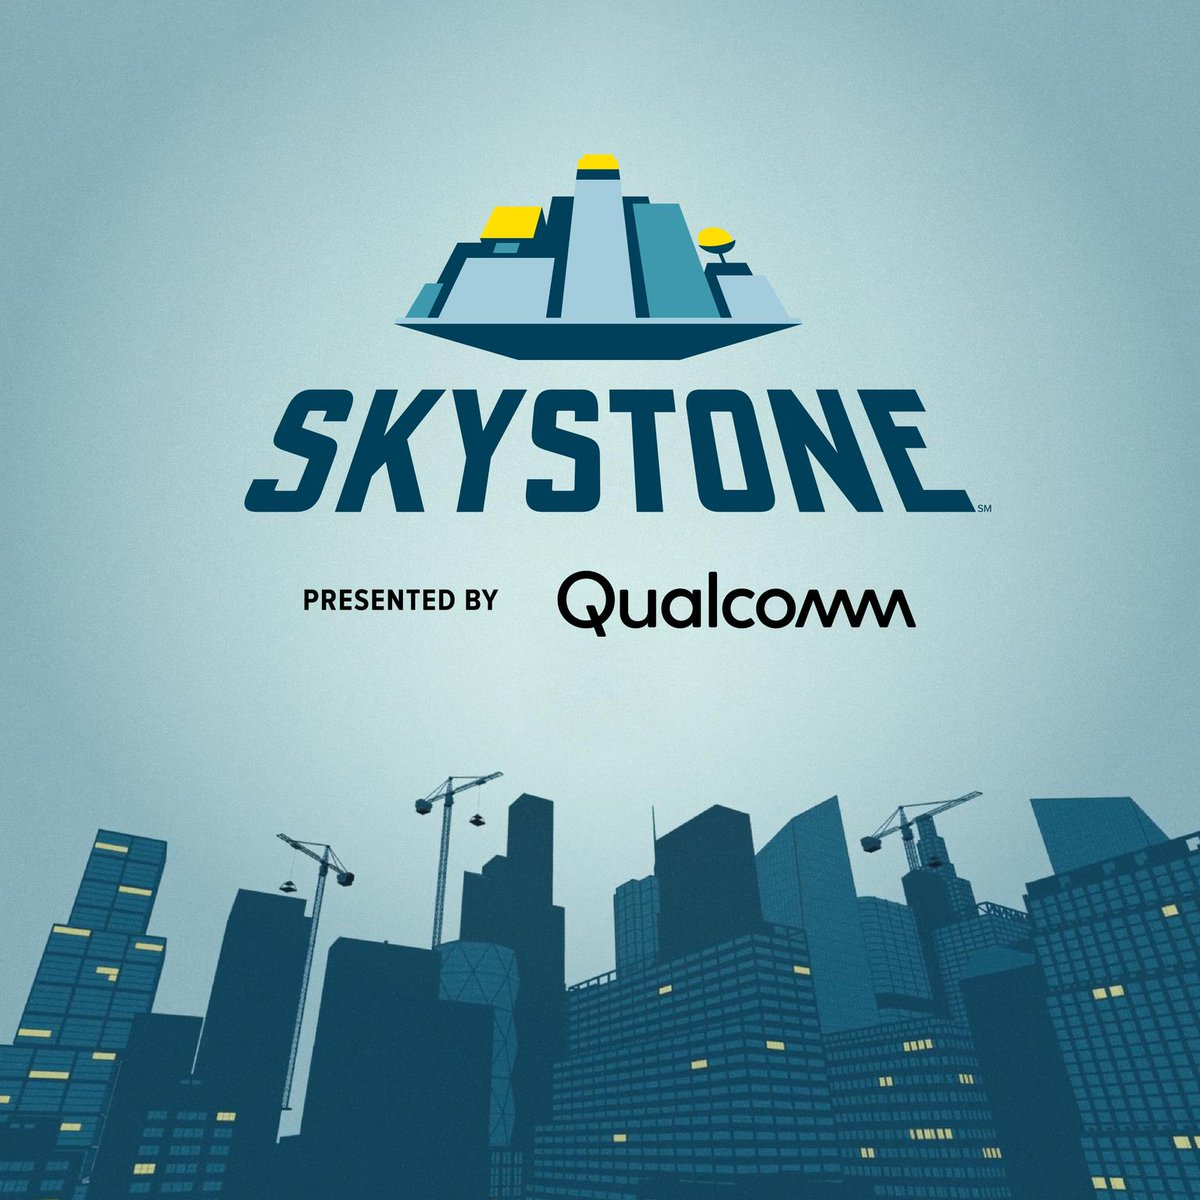 First Tech Challenge On Twitter It S The Most Wonderful Time Of The Year Countdowntokickoff Skystone Https T Co S8oelbrfcn